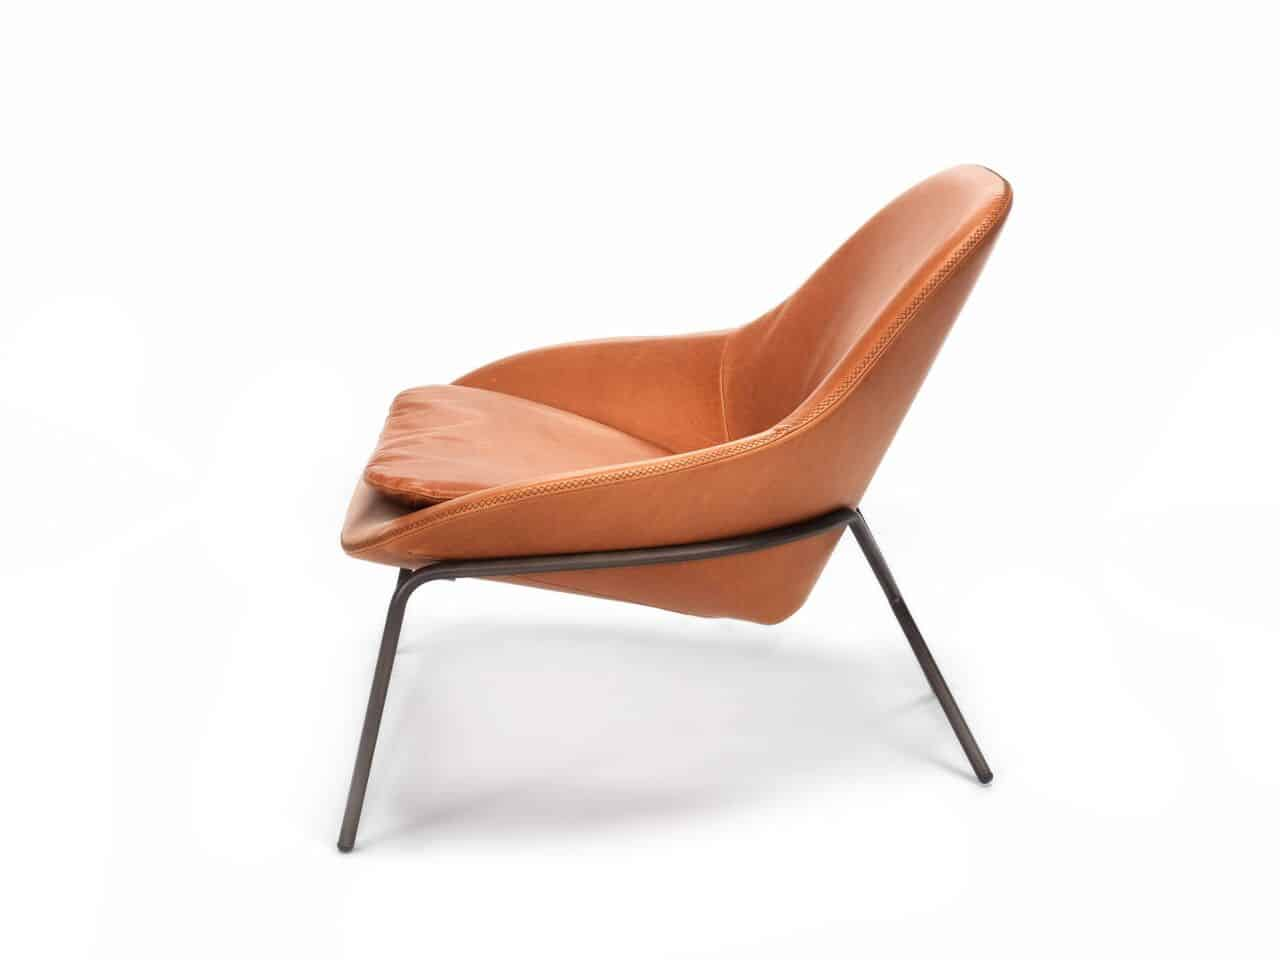 long lounge chair kid bean bag chairs canada comfortable leather cross leg by magnus view in gallery 4 looks jpg